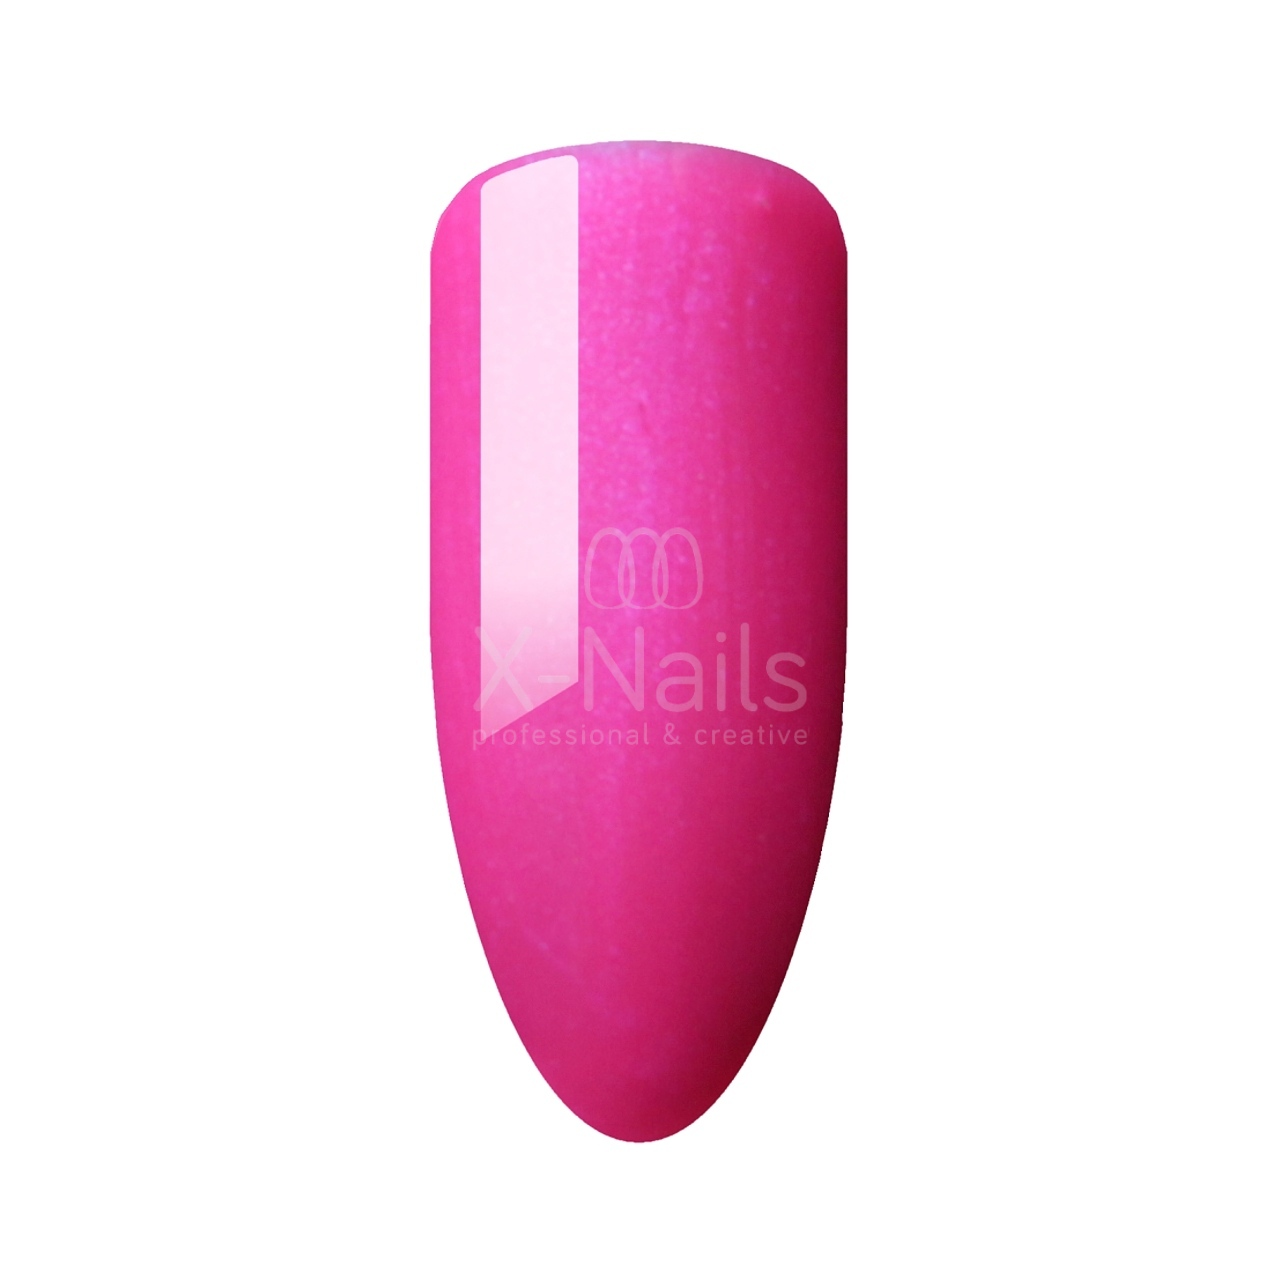 X-NAILS One step gel lak 5 ml - METALLIC FUCHSIA PINK